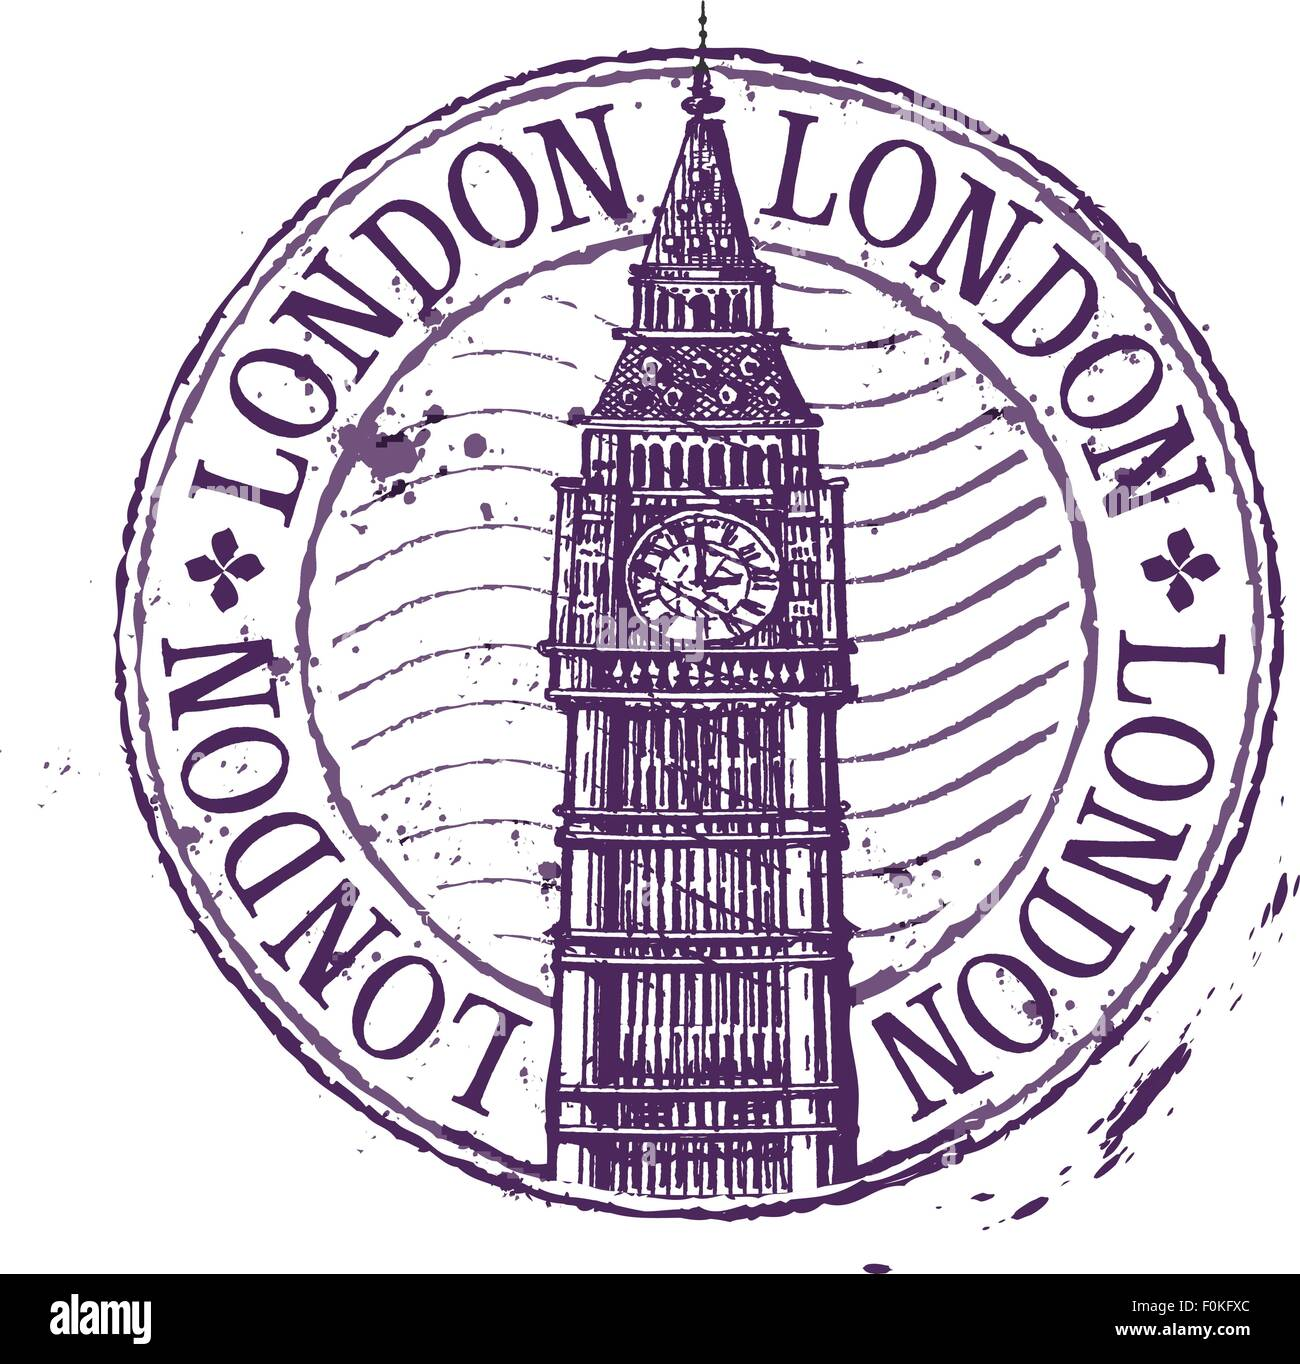 london vector logo design template shabby stamp or